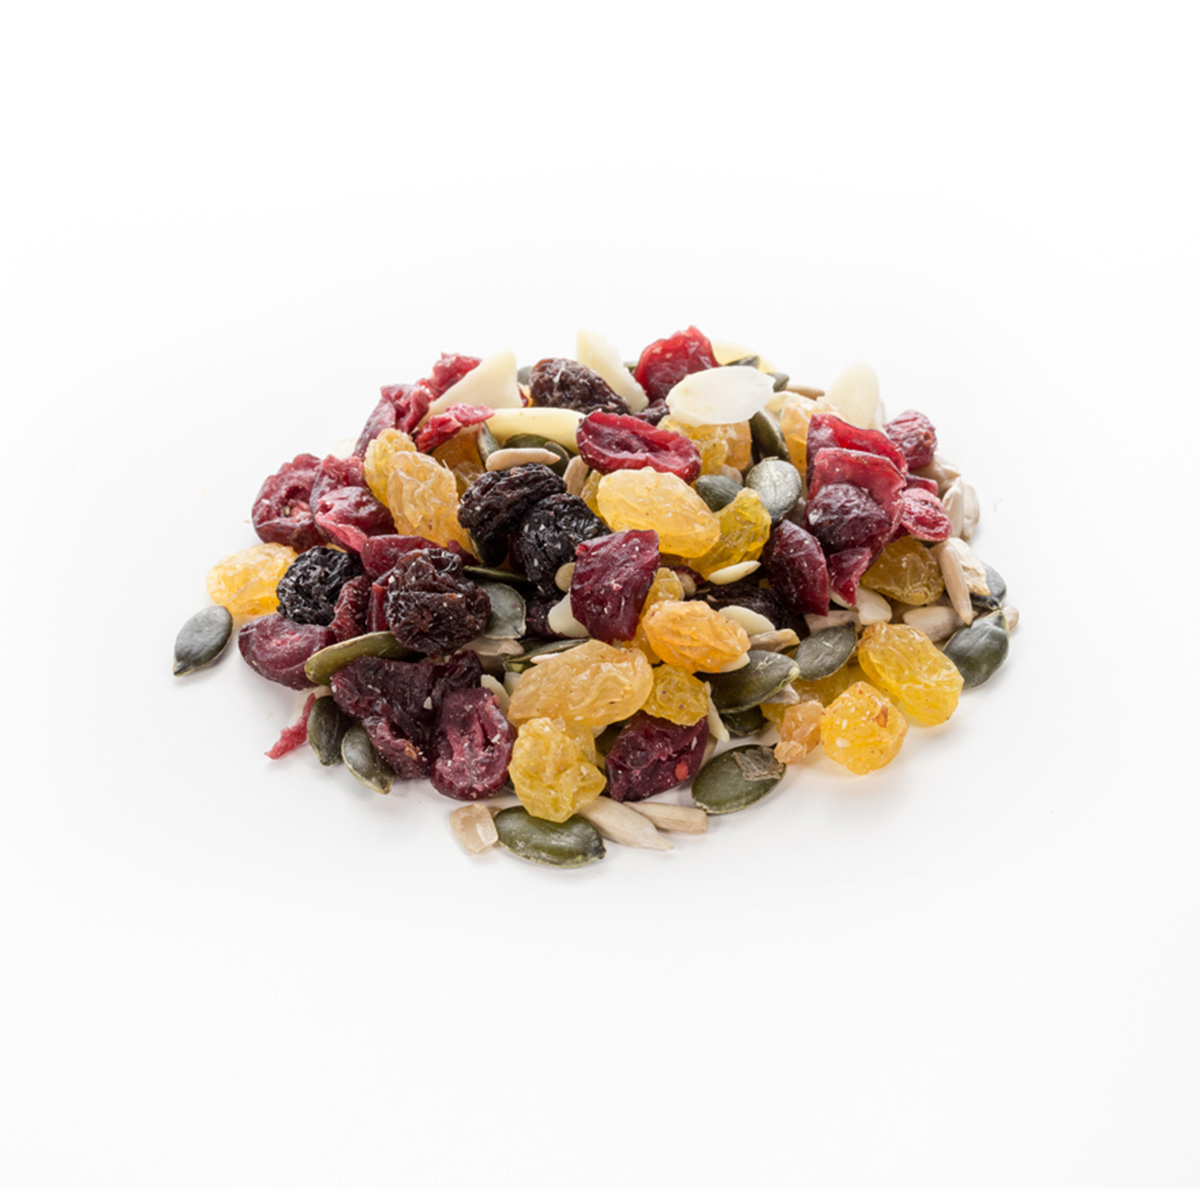 Raw Energy Mix of Nuts, Seeds & Dried Fruit